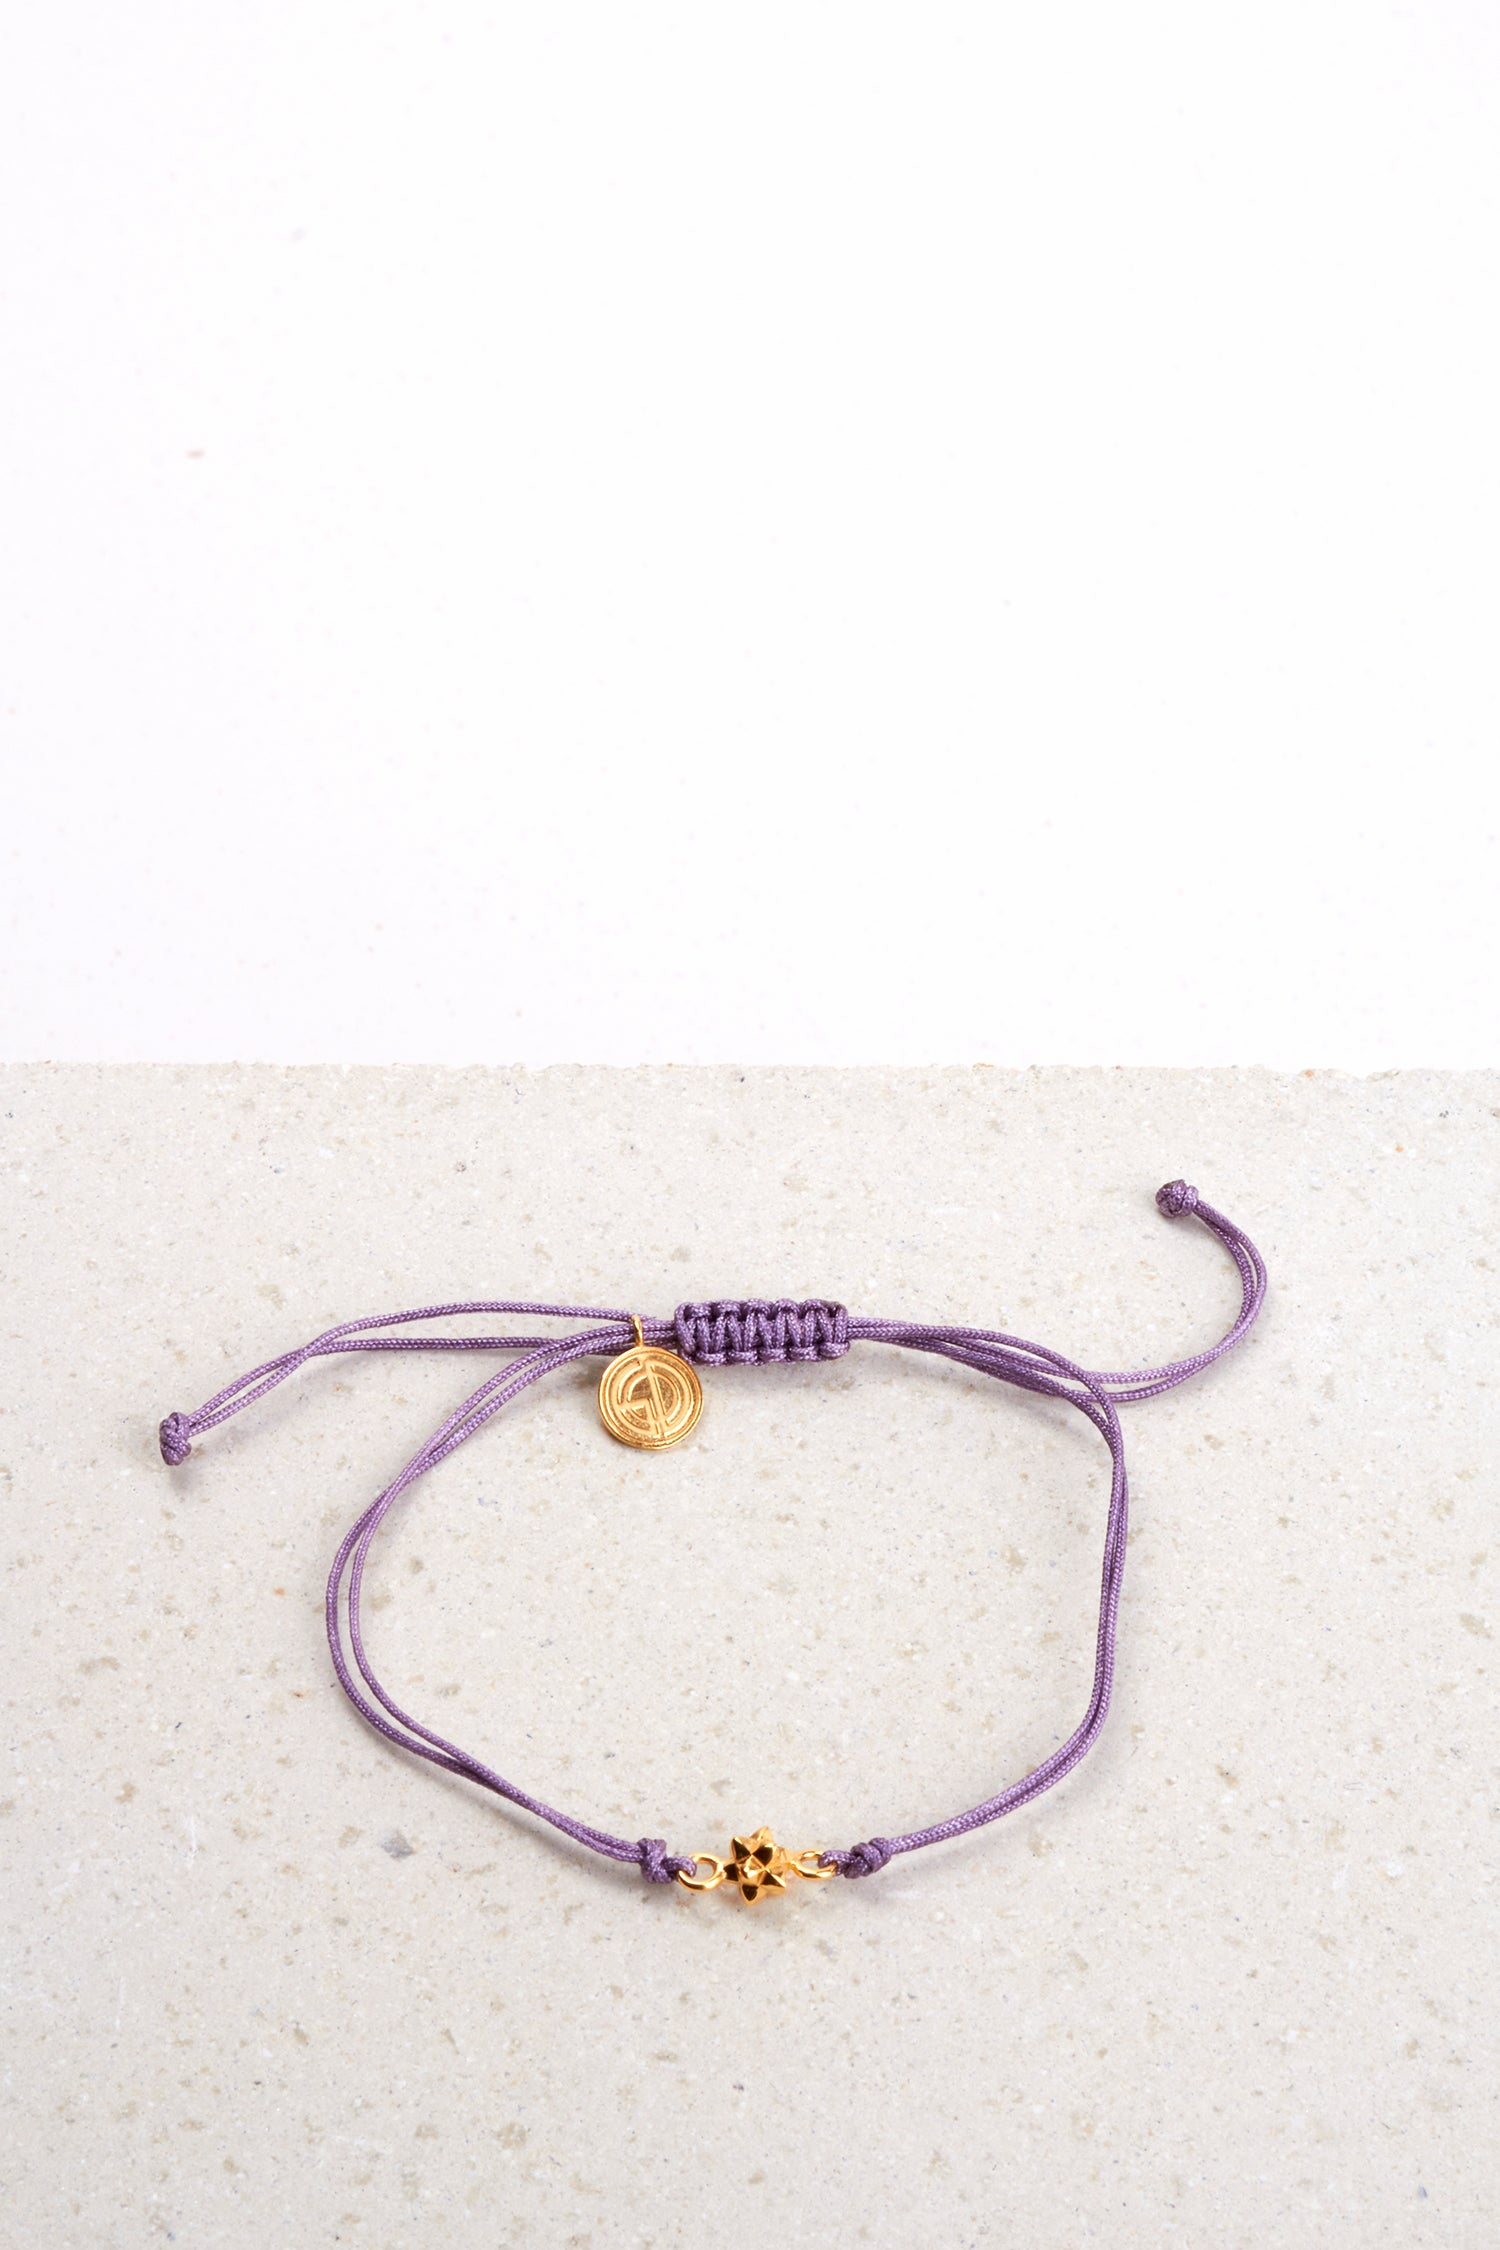 MINI VEGA BRACELET LILAC THREAD